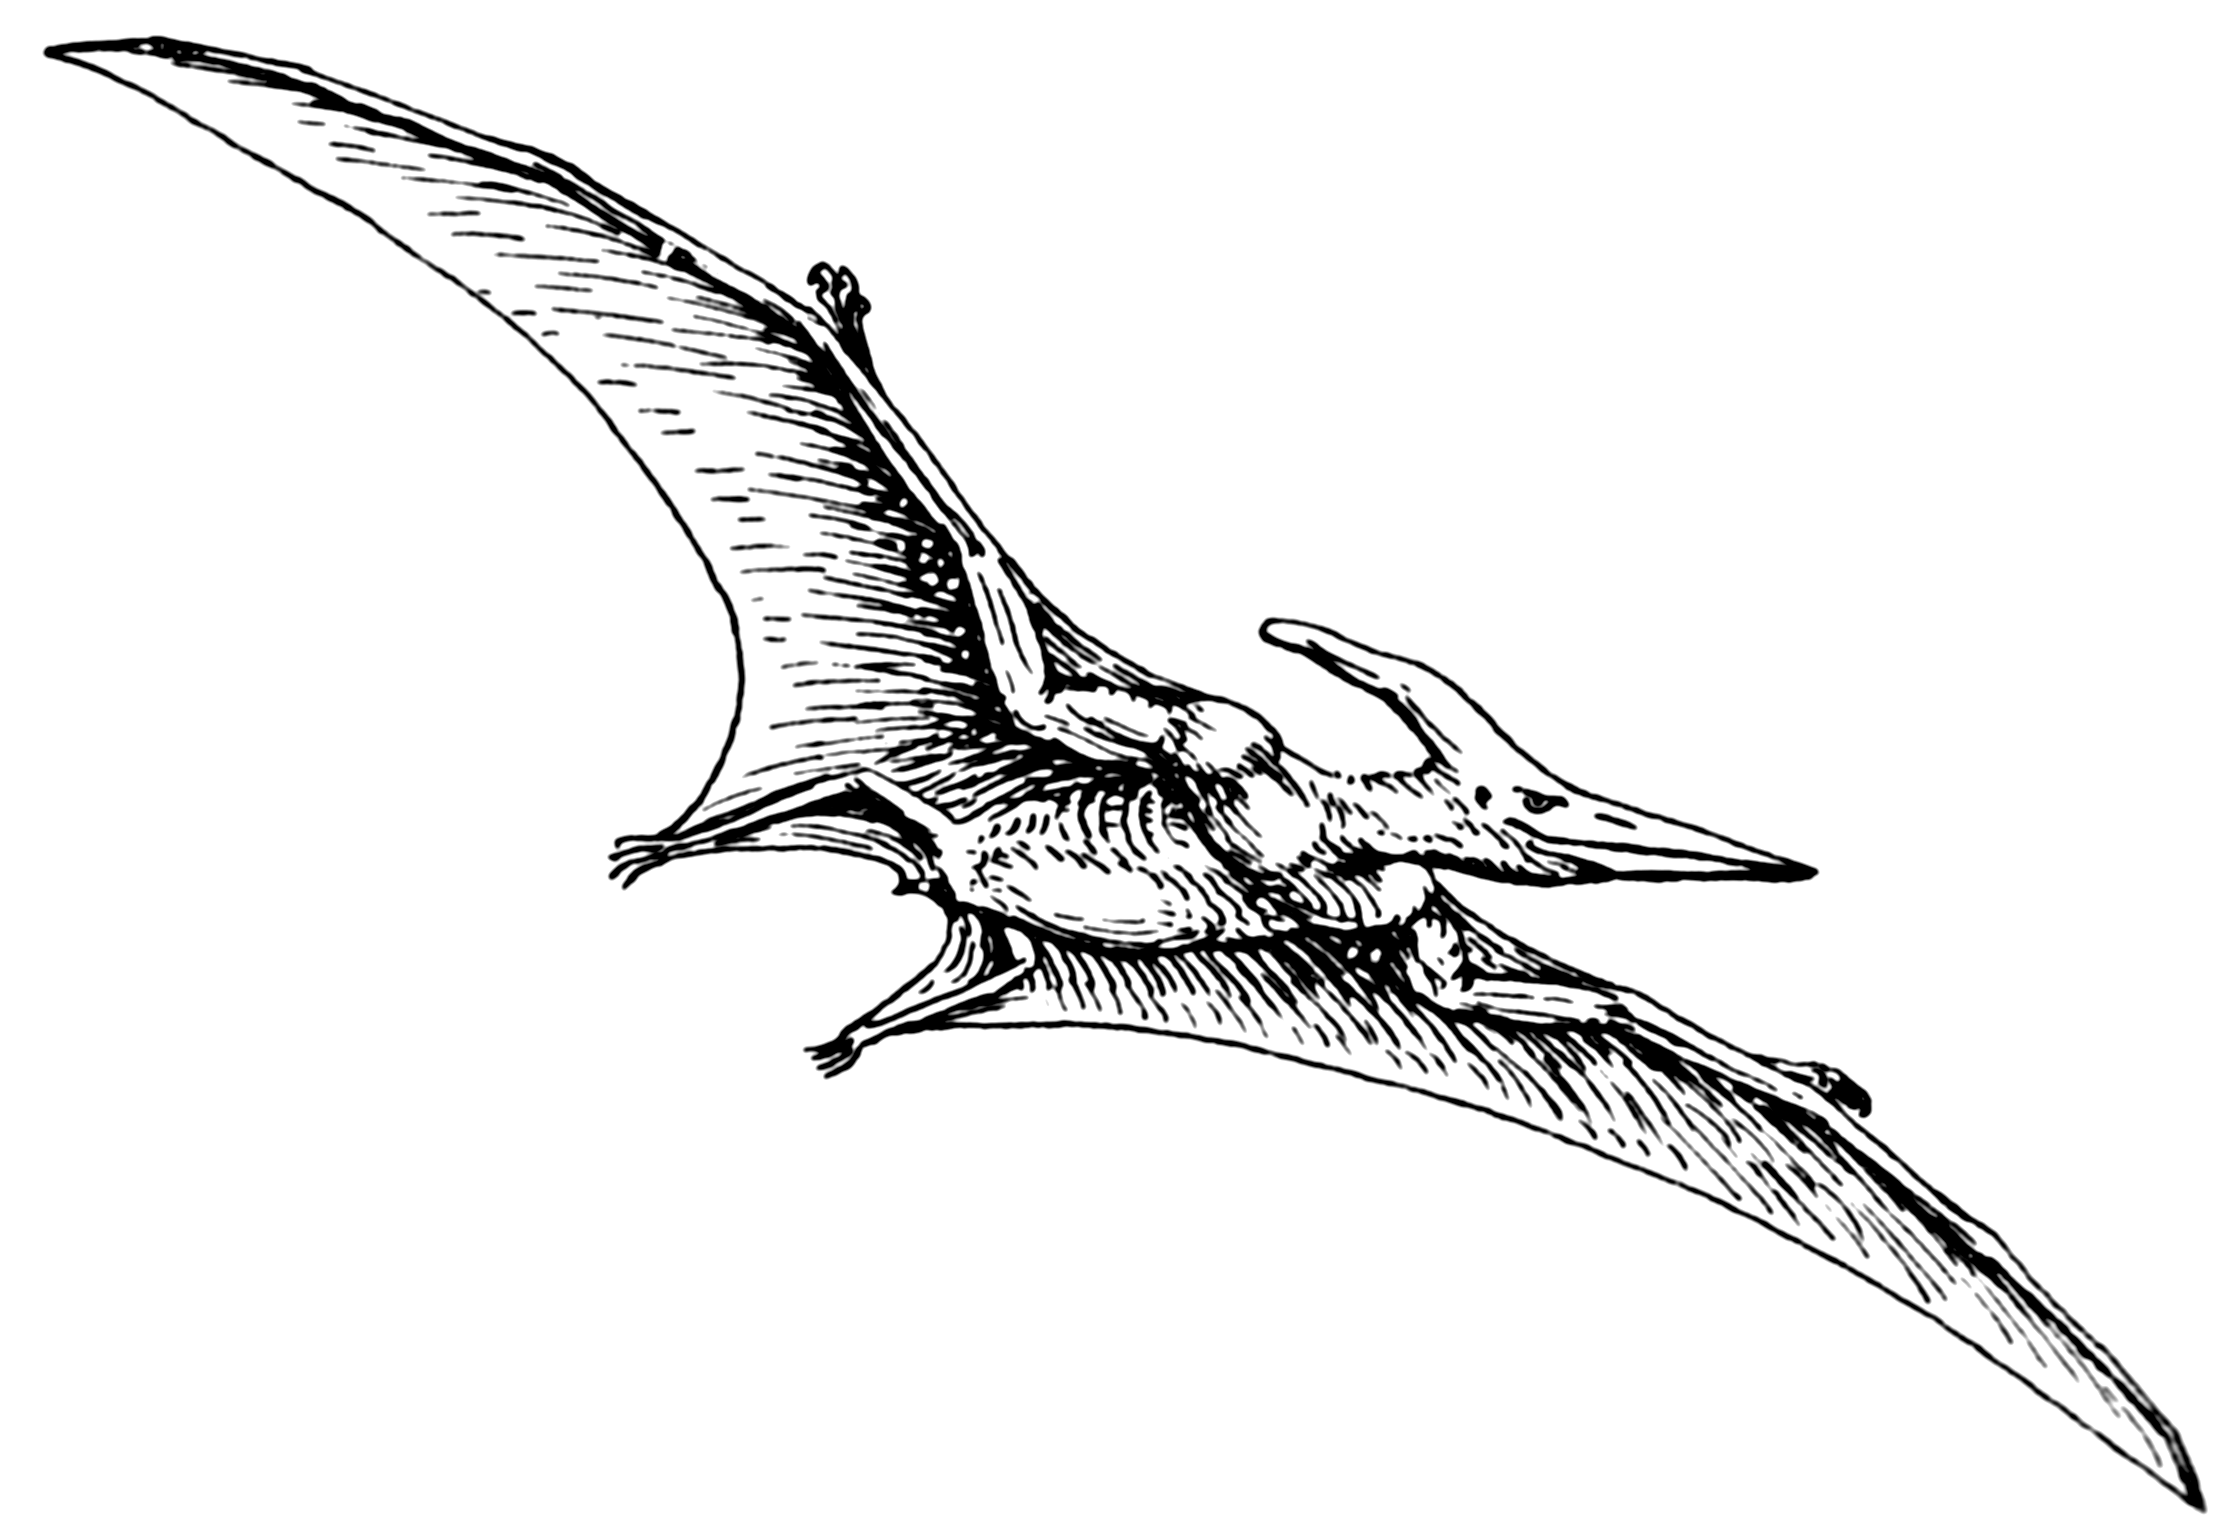 pterodactyl in the corn fields of missouri cryptozoology news